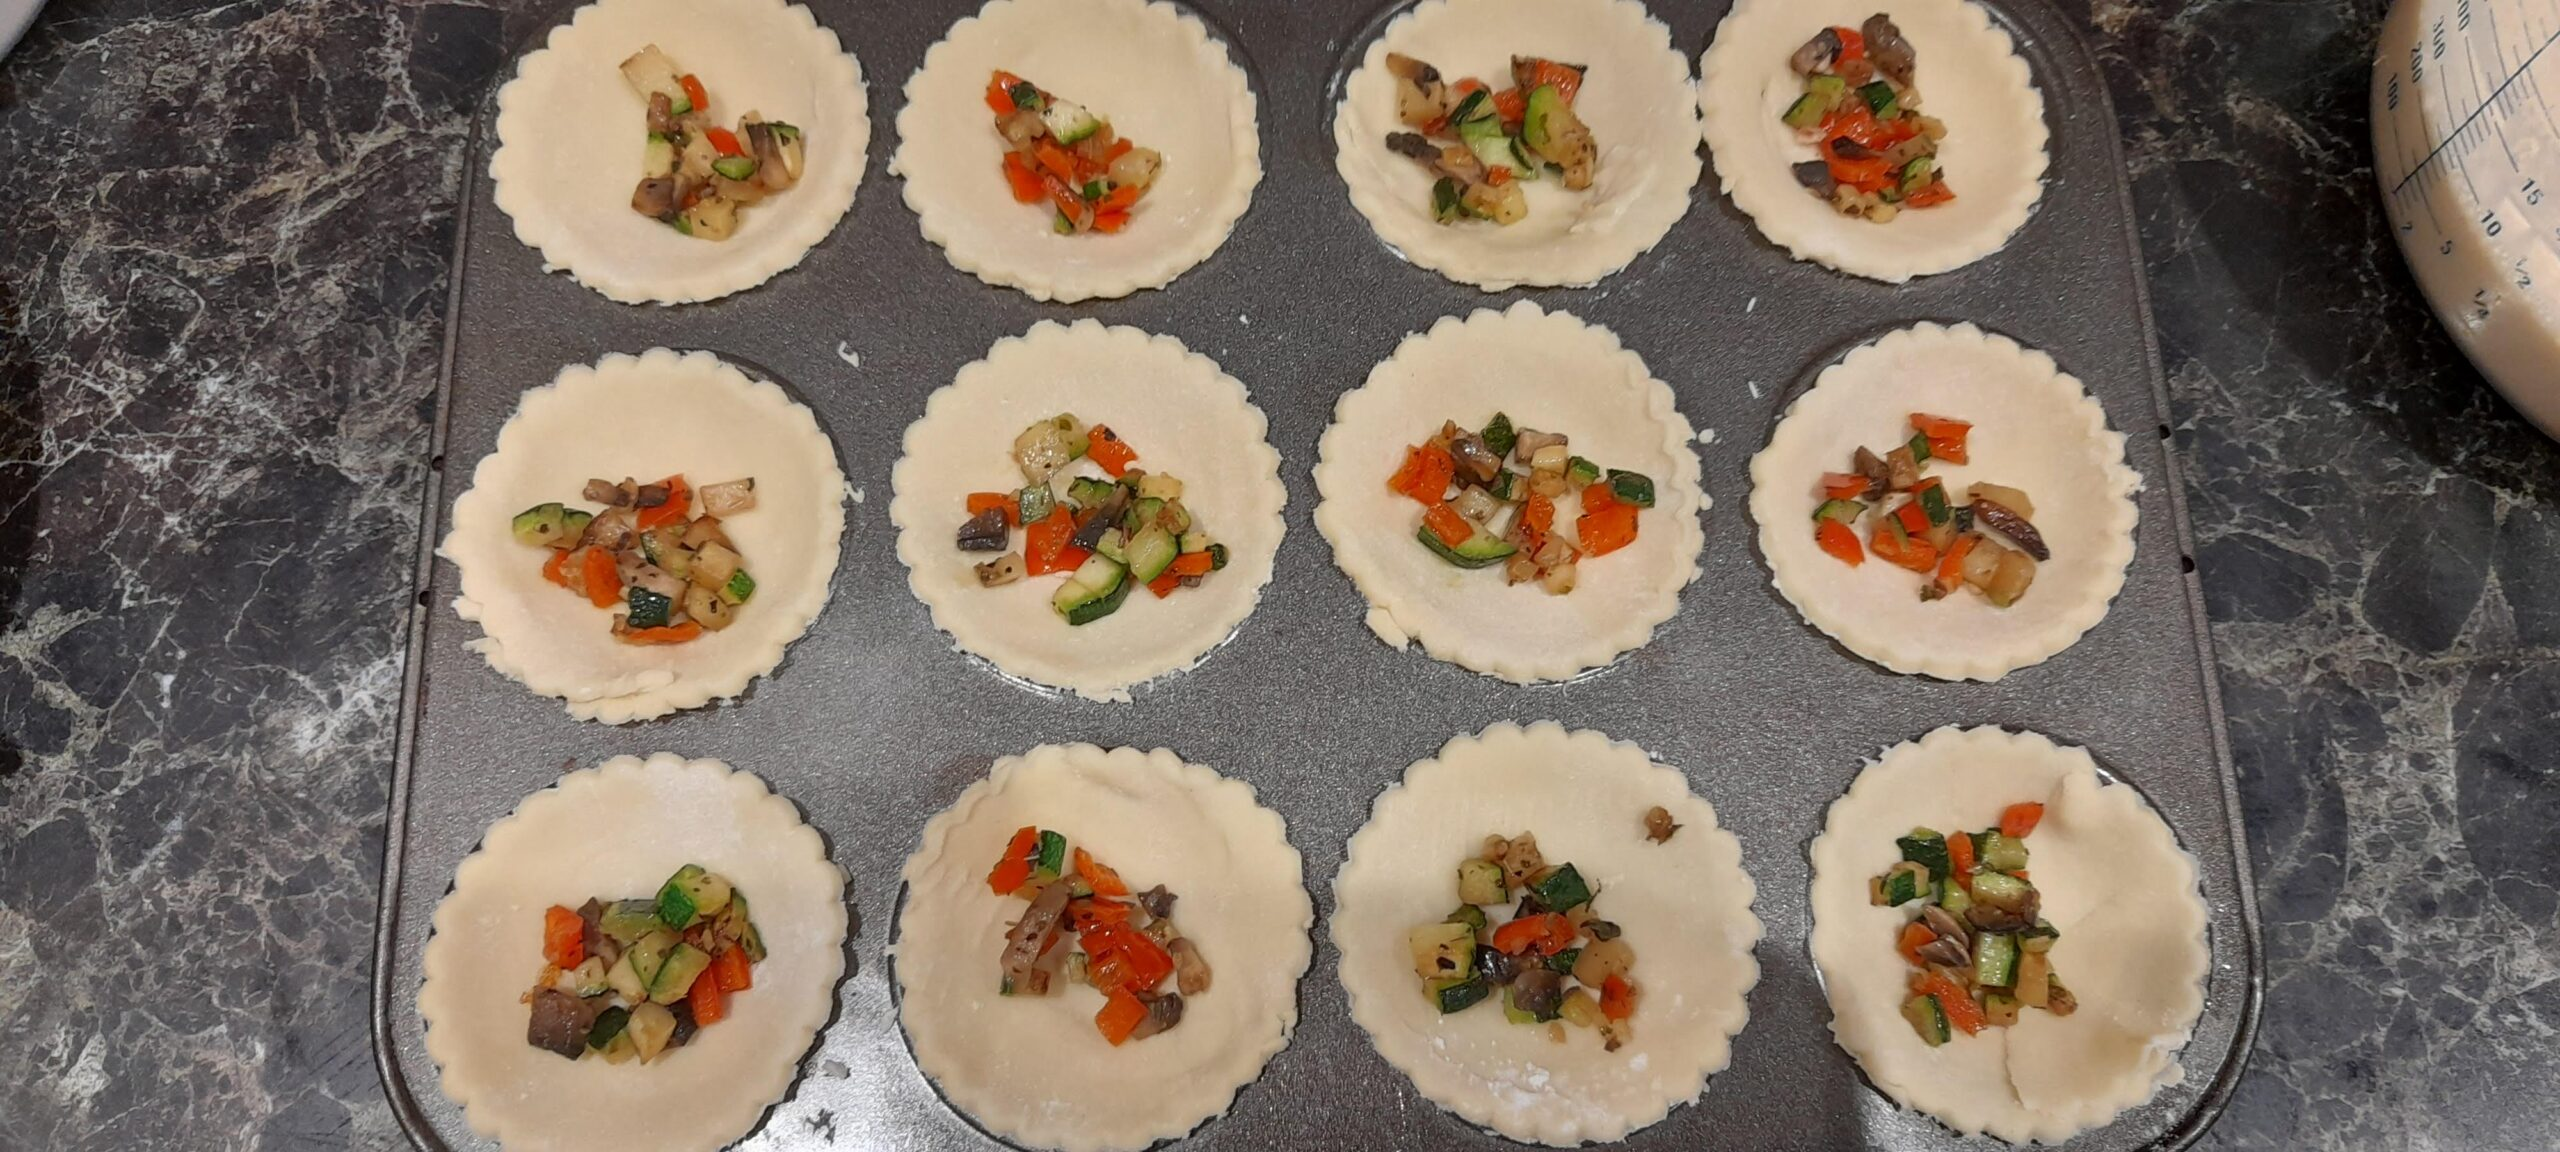 mini veg quiches before cooking